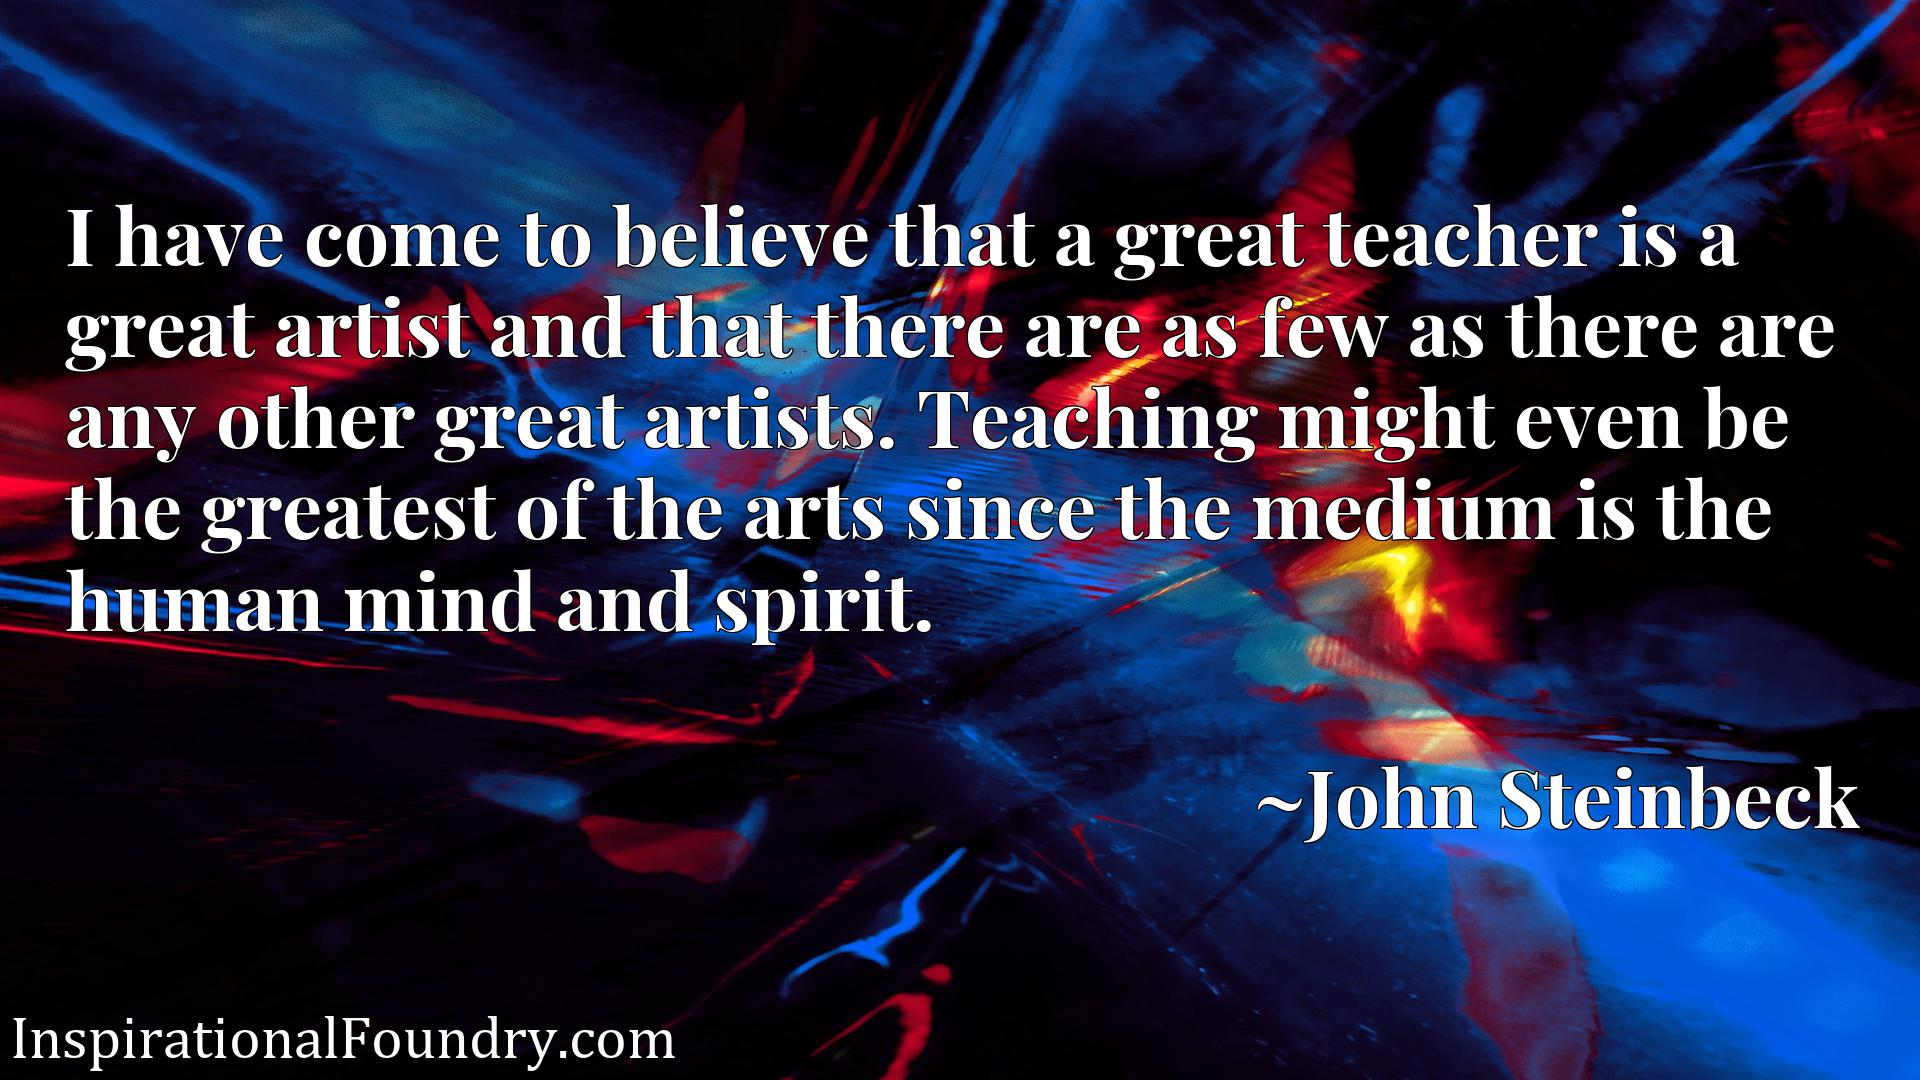 I have come to believe that a great teacher is a great artist and that there are as few as there are any other great artists. Teaching might even be the greatest of the arts since the medium is the human mind and spirit.